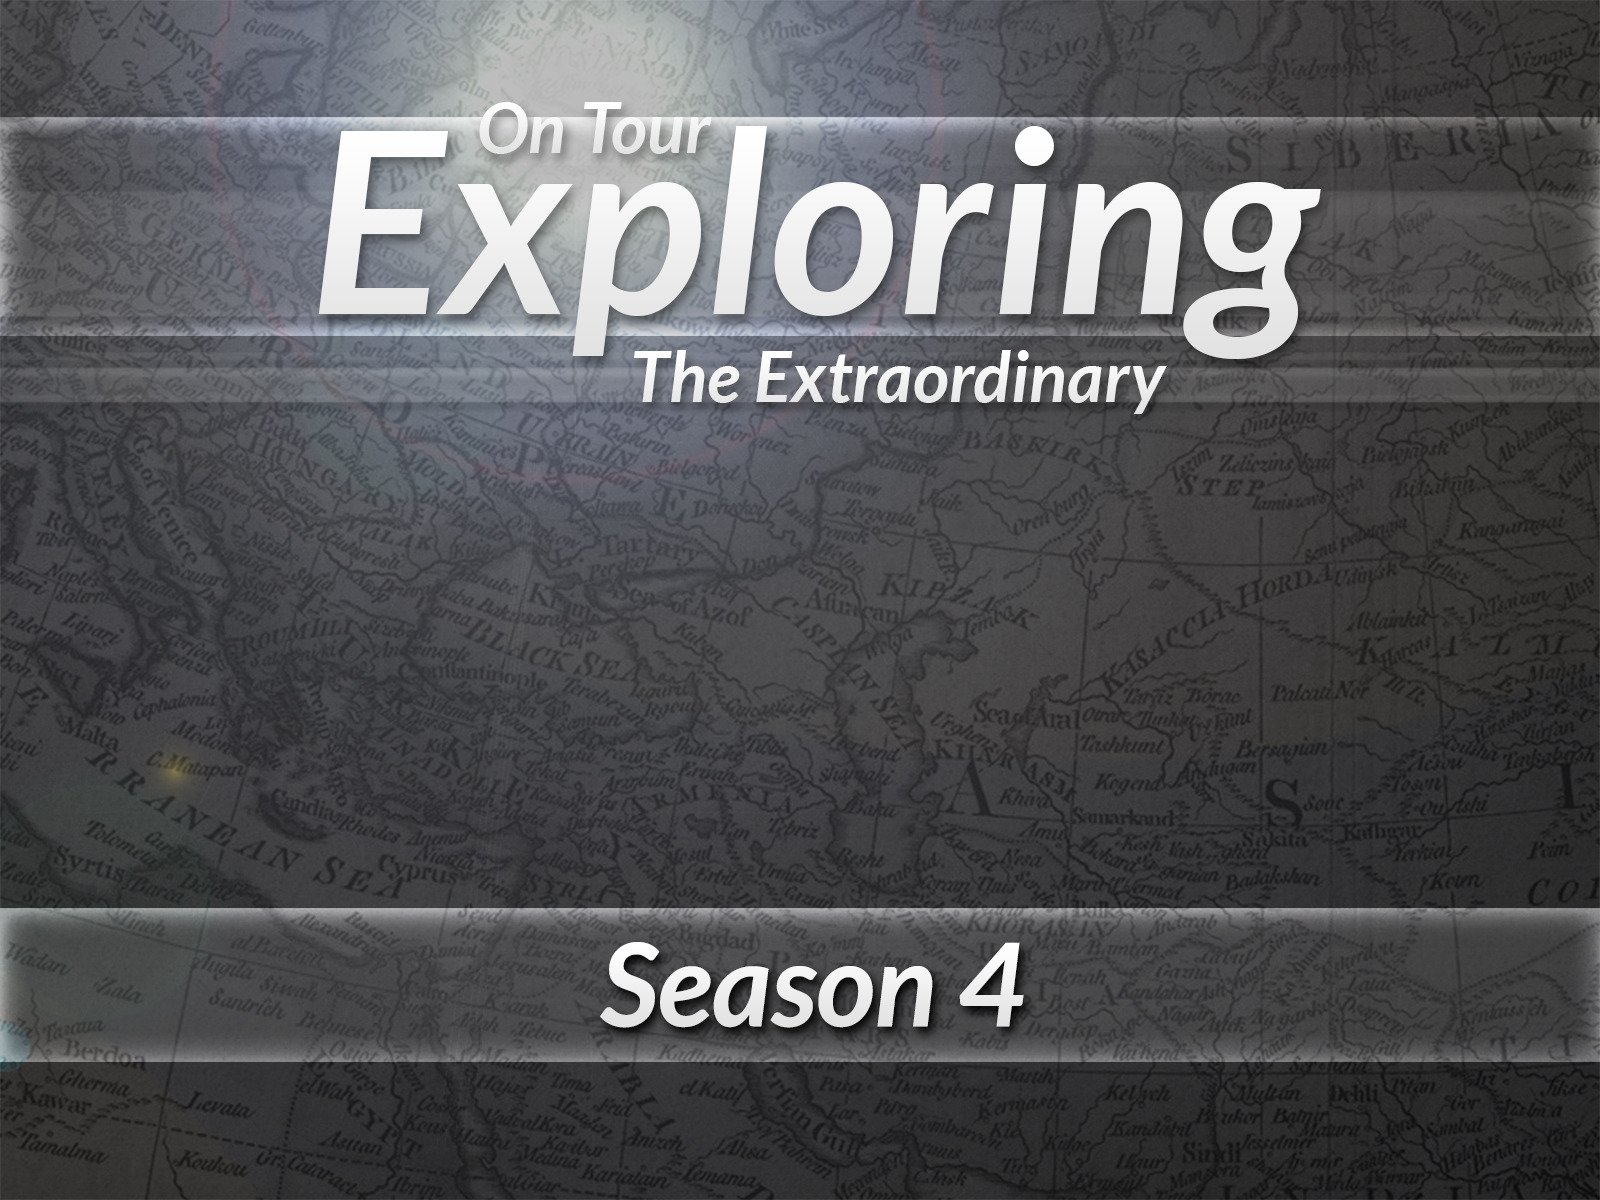 On Tour: Exploring the Extraordinary - Season 4